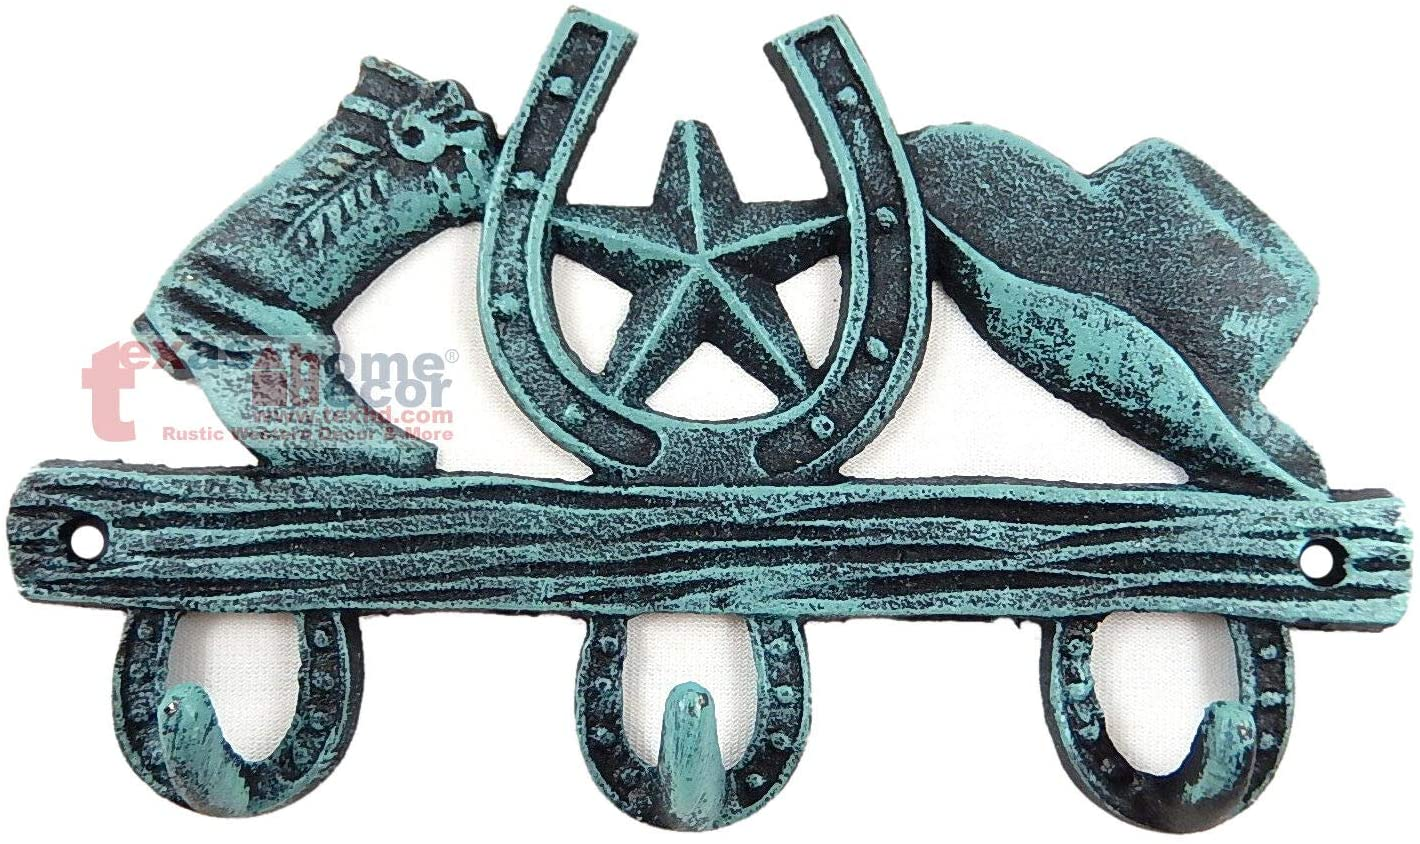 Antiques - Vintage - Hooks on The Wall for a Bathroom - Locker Rooms - Kitchens Small Turquoise Rustic Western Key Holder Hat Horseshoe Boot 3 Hooks Cast Iron